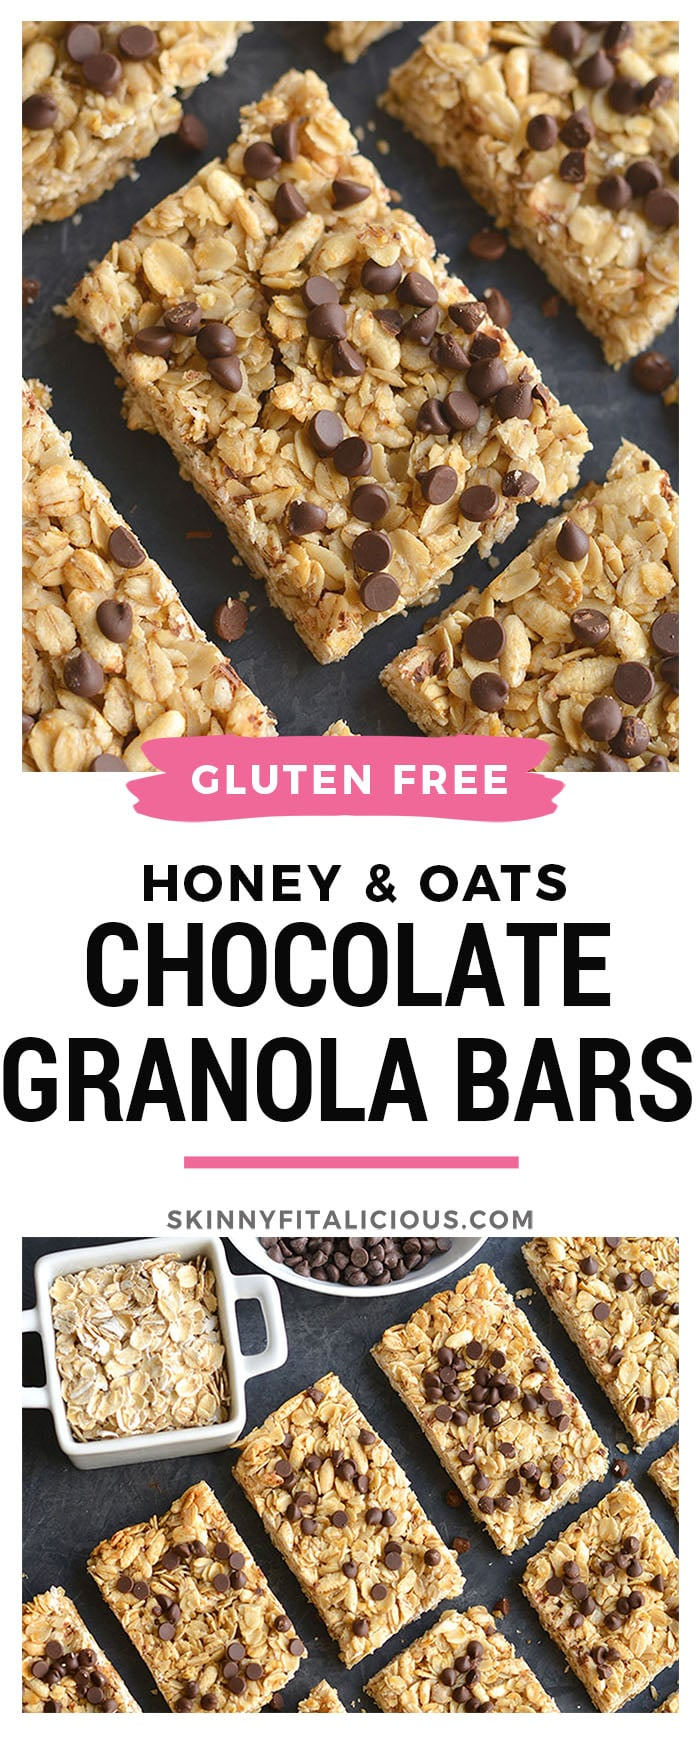 Honey Oats Chocolate Chip Granola Bars! Chewy granola bars made with recognizable ingredients and gluten free. An easy homemadesnack or lunchbox treat!